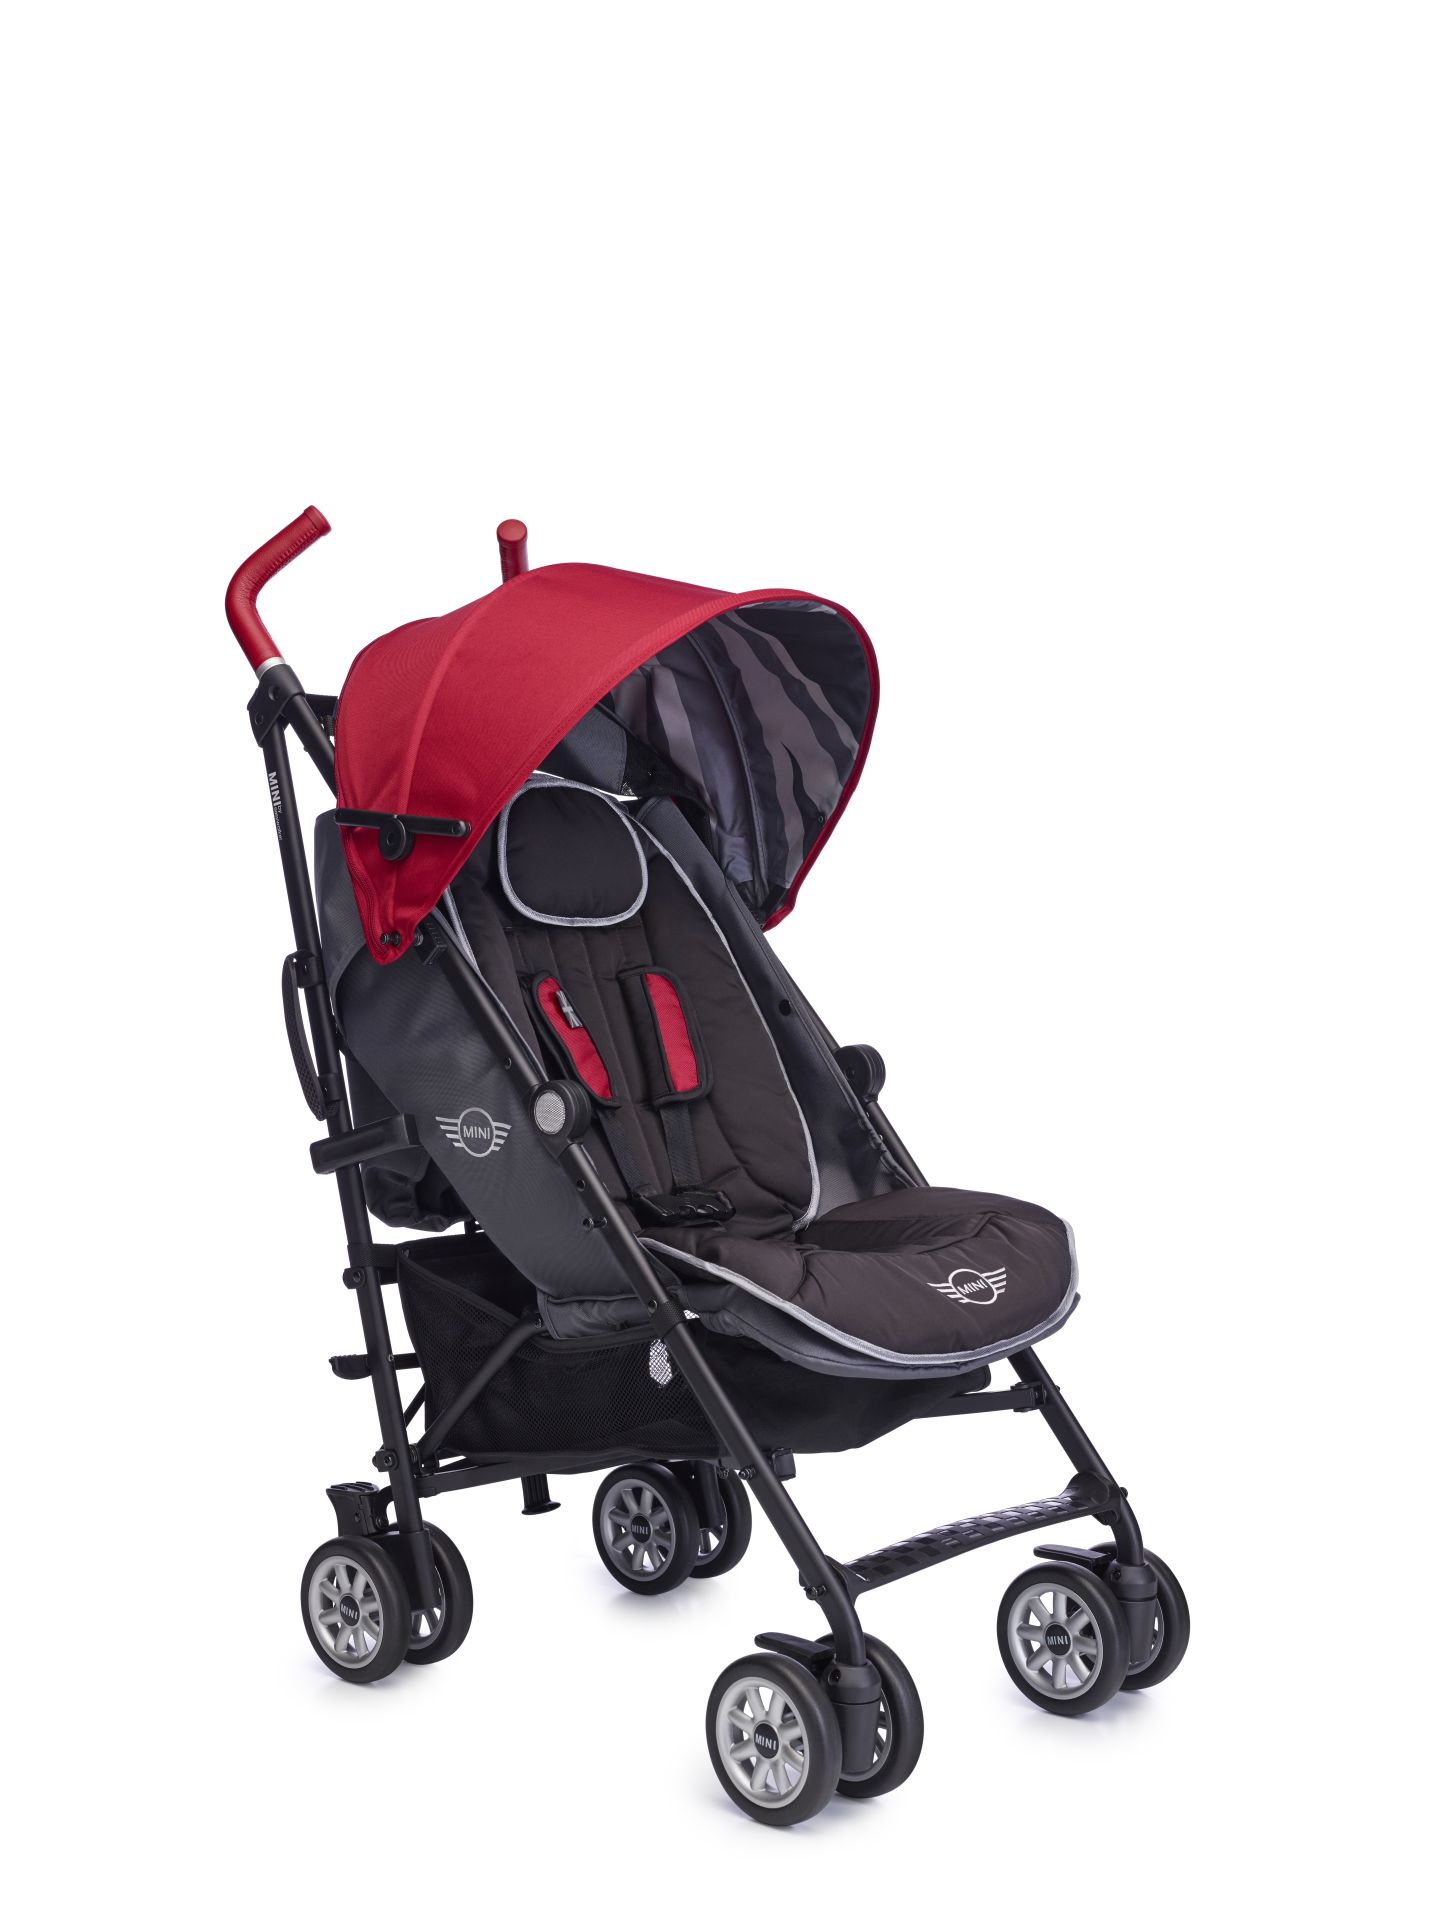 mini by easywalker buggy special edition 2017 union red buy at kidsroom strollers. Black Bedroom Furniture Sets. Home Design Ideas